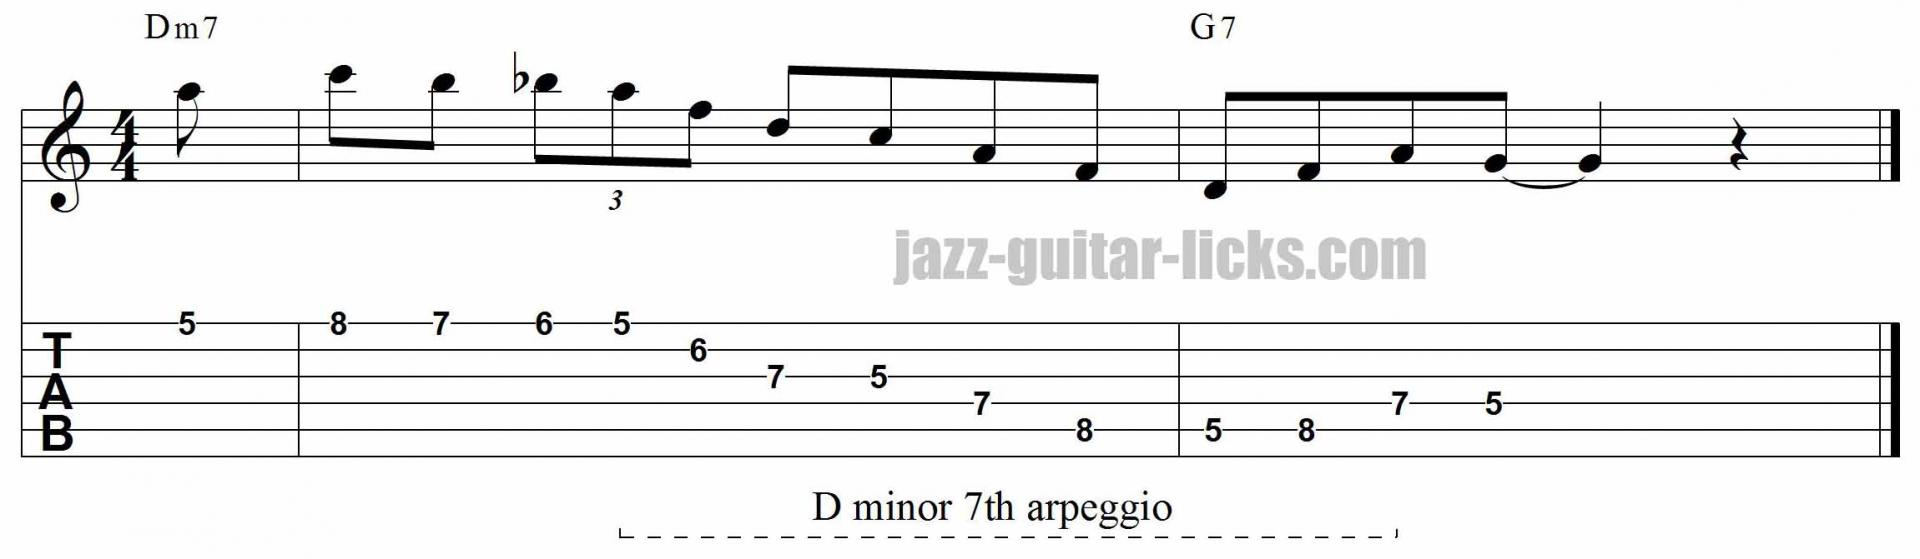 Minor 7th arpeggio lick 2